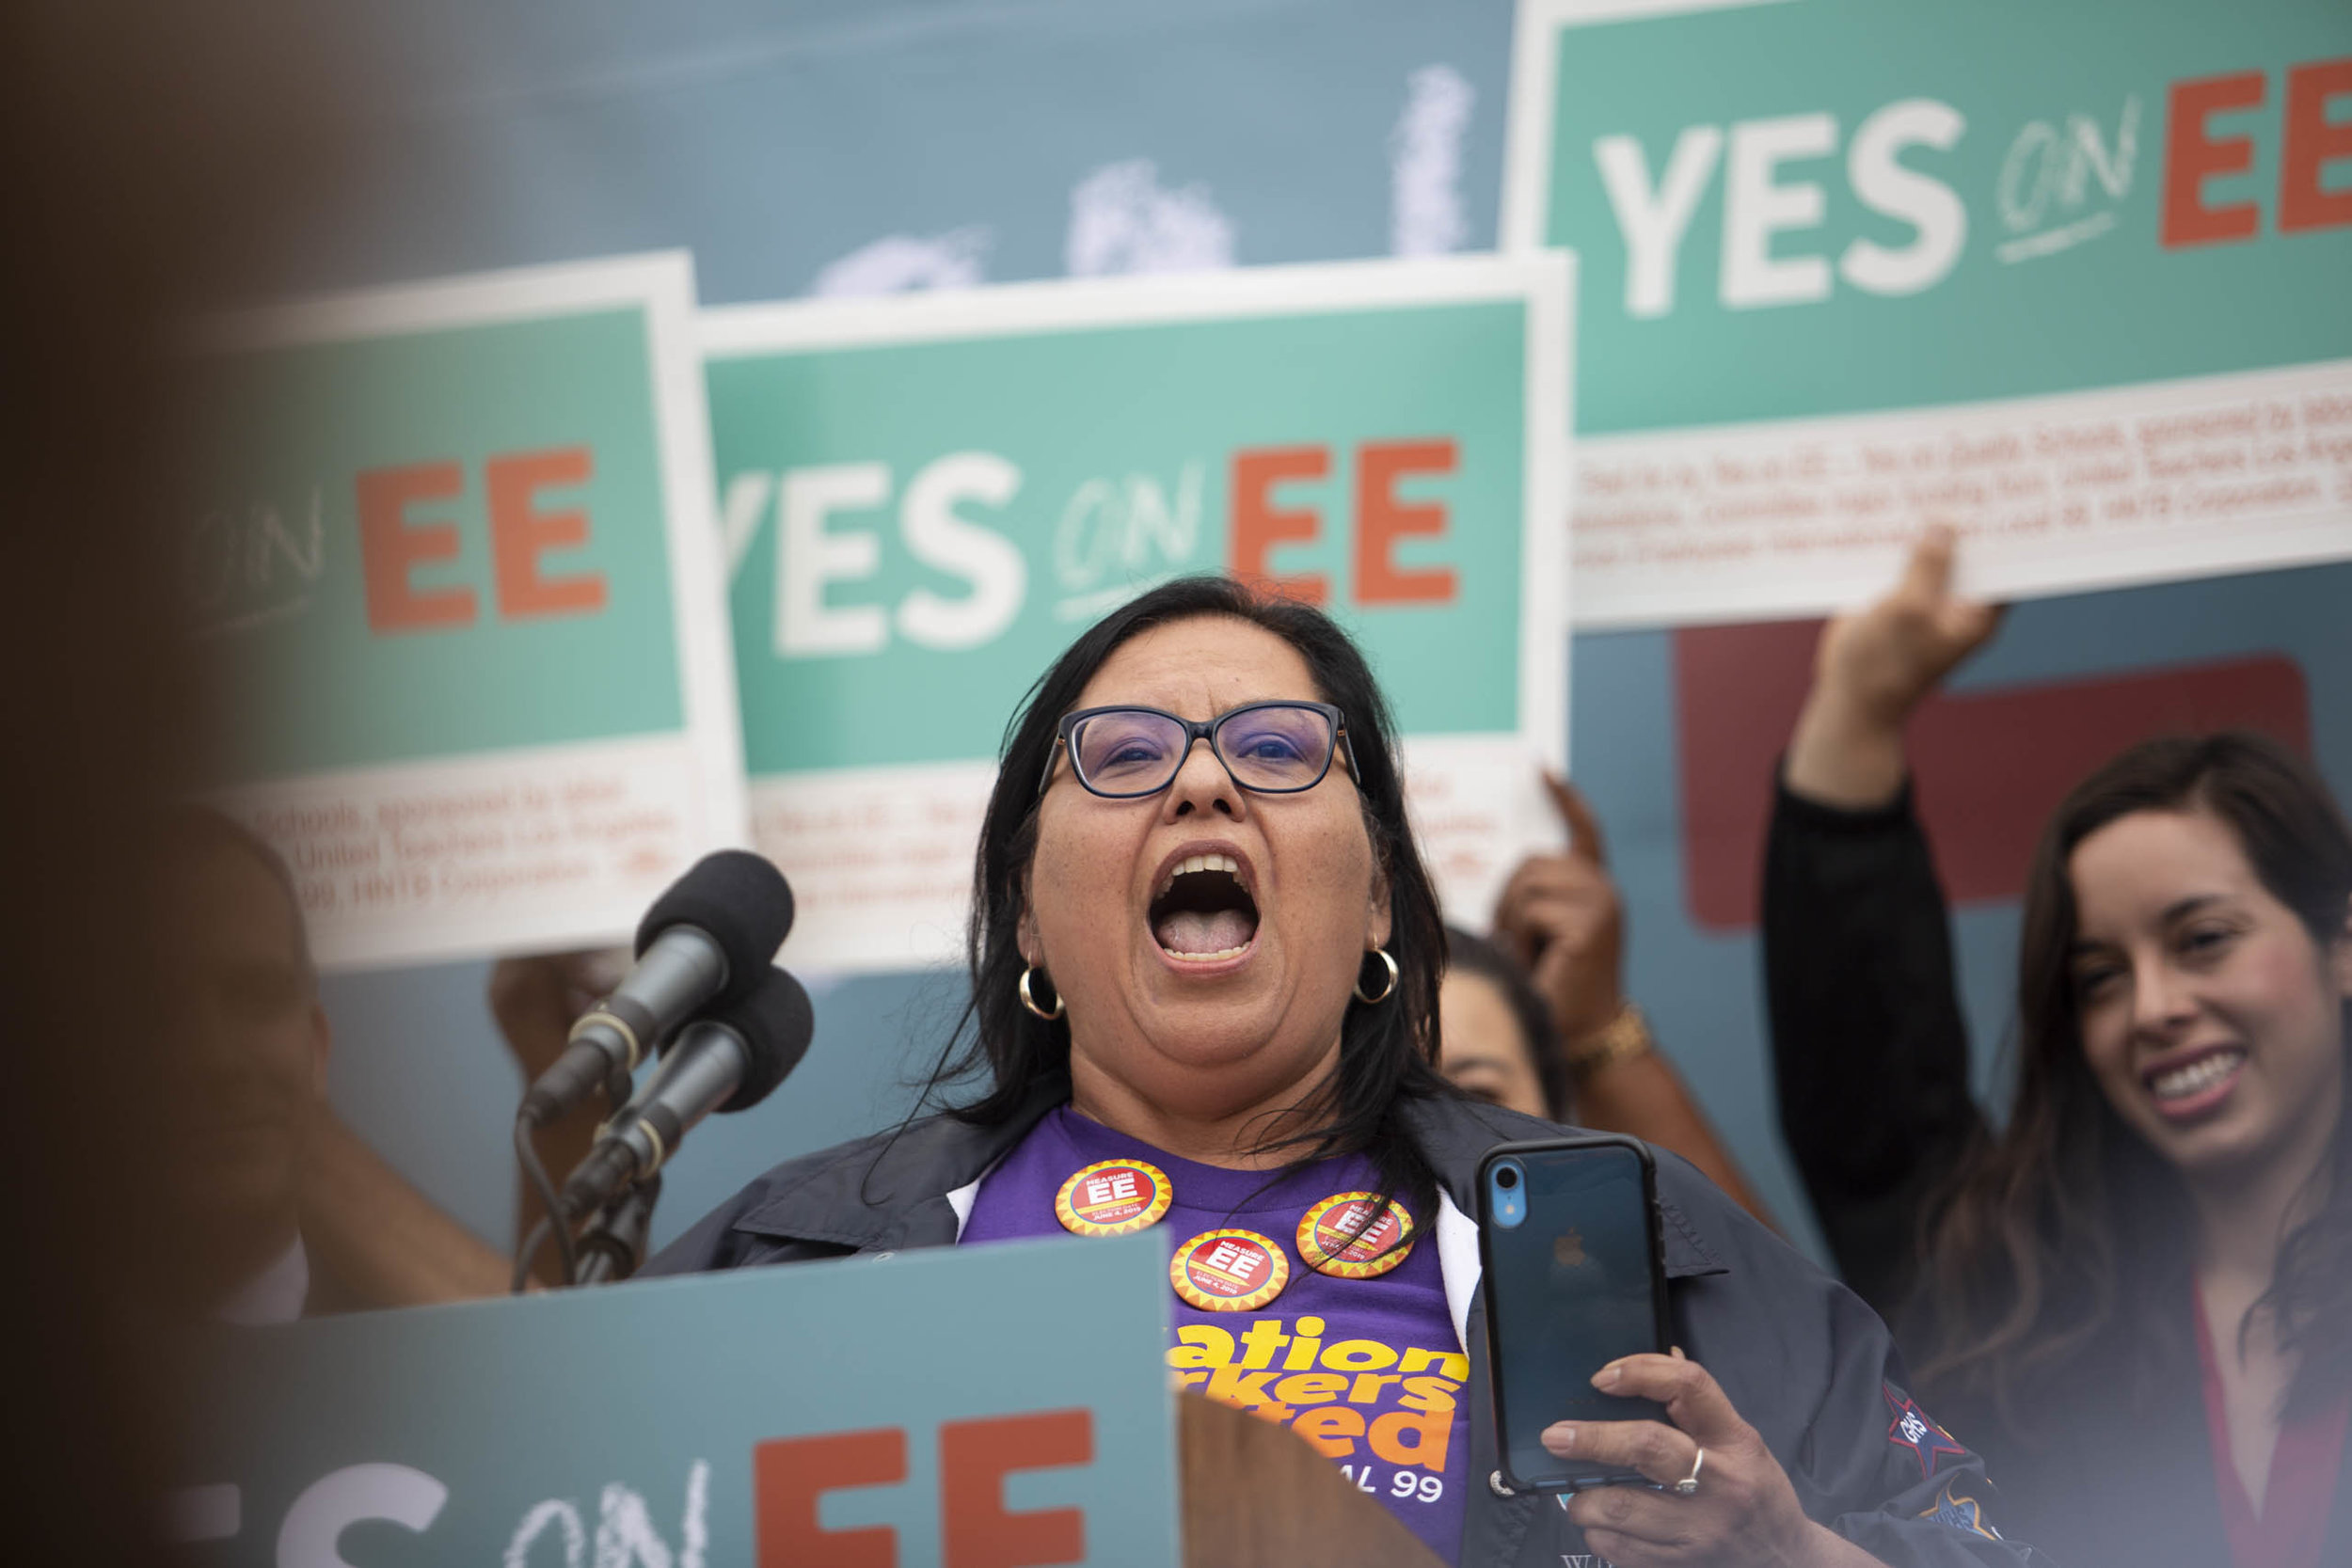 MONICA GARCIA, Los Angeles Unified School District Board of Education, during a rally in support of Mayor Pete Buttigieg for his 2020 presidential campaign on Thursday, May 9, 2019 in Los Angeles, Calif. (Yasamin Jtehrani / The Corsair)